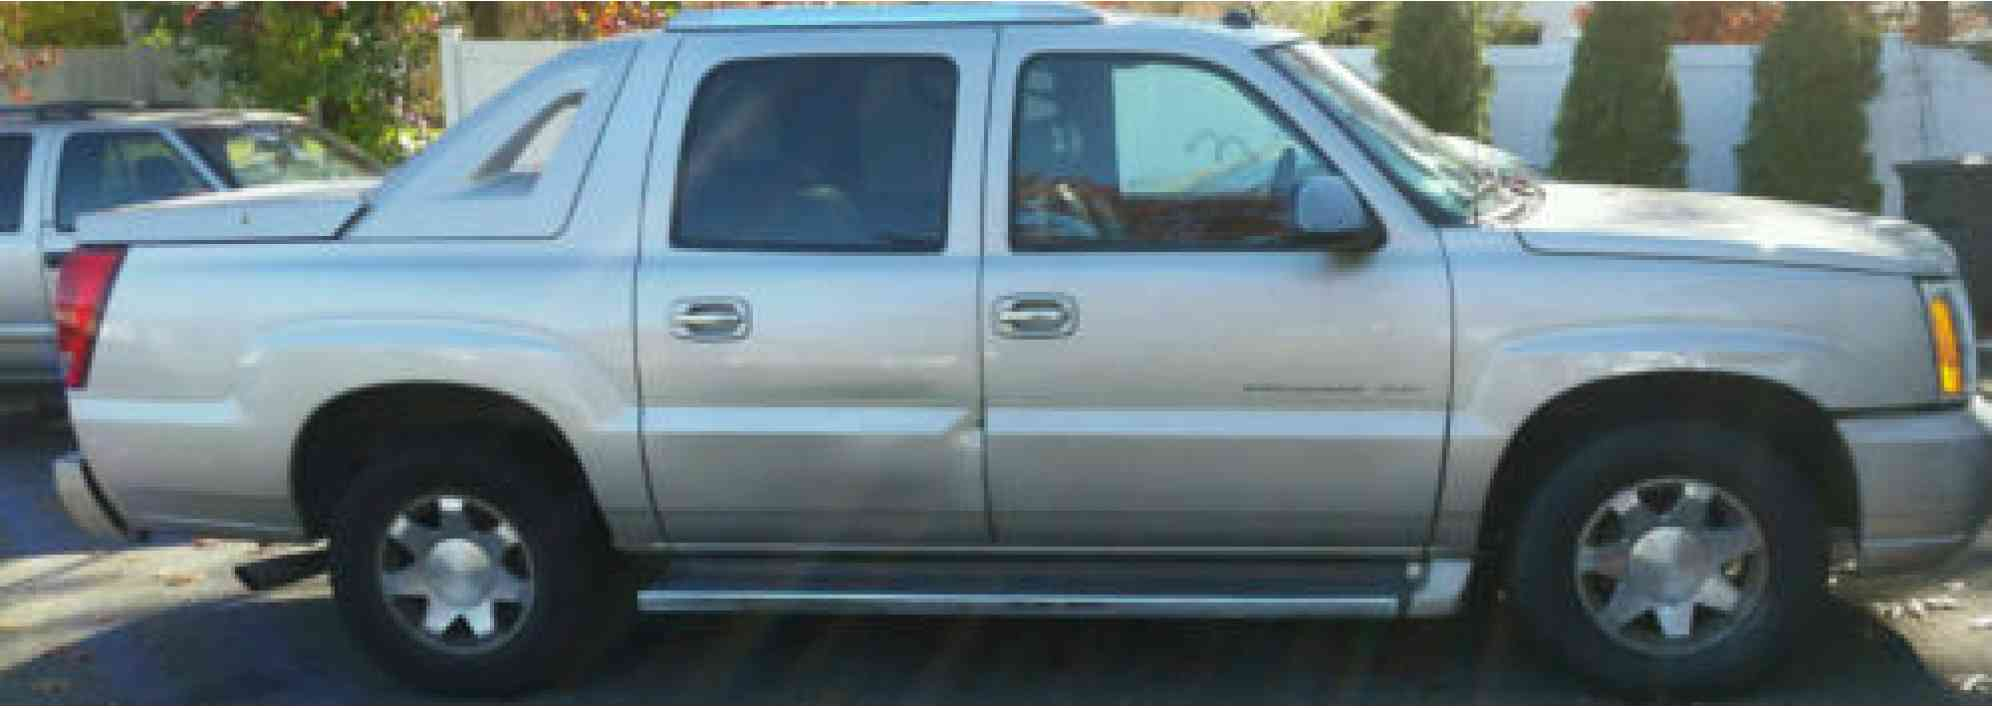 cadillac escalade esv 2008 vehicle is in great condition. Black Bedroom Furniture Sets. Home Design Ideas